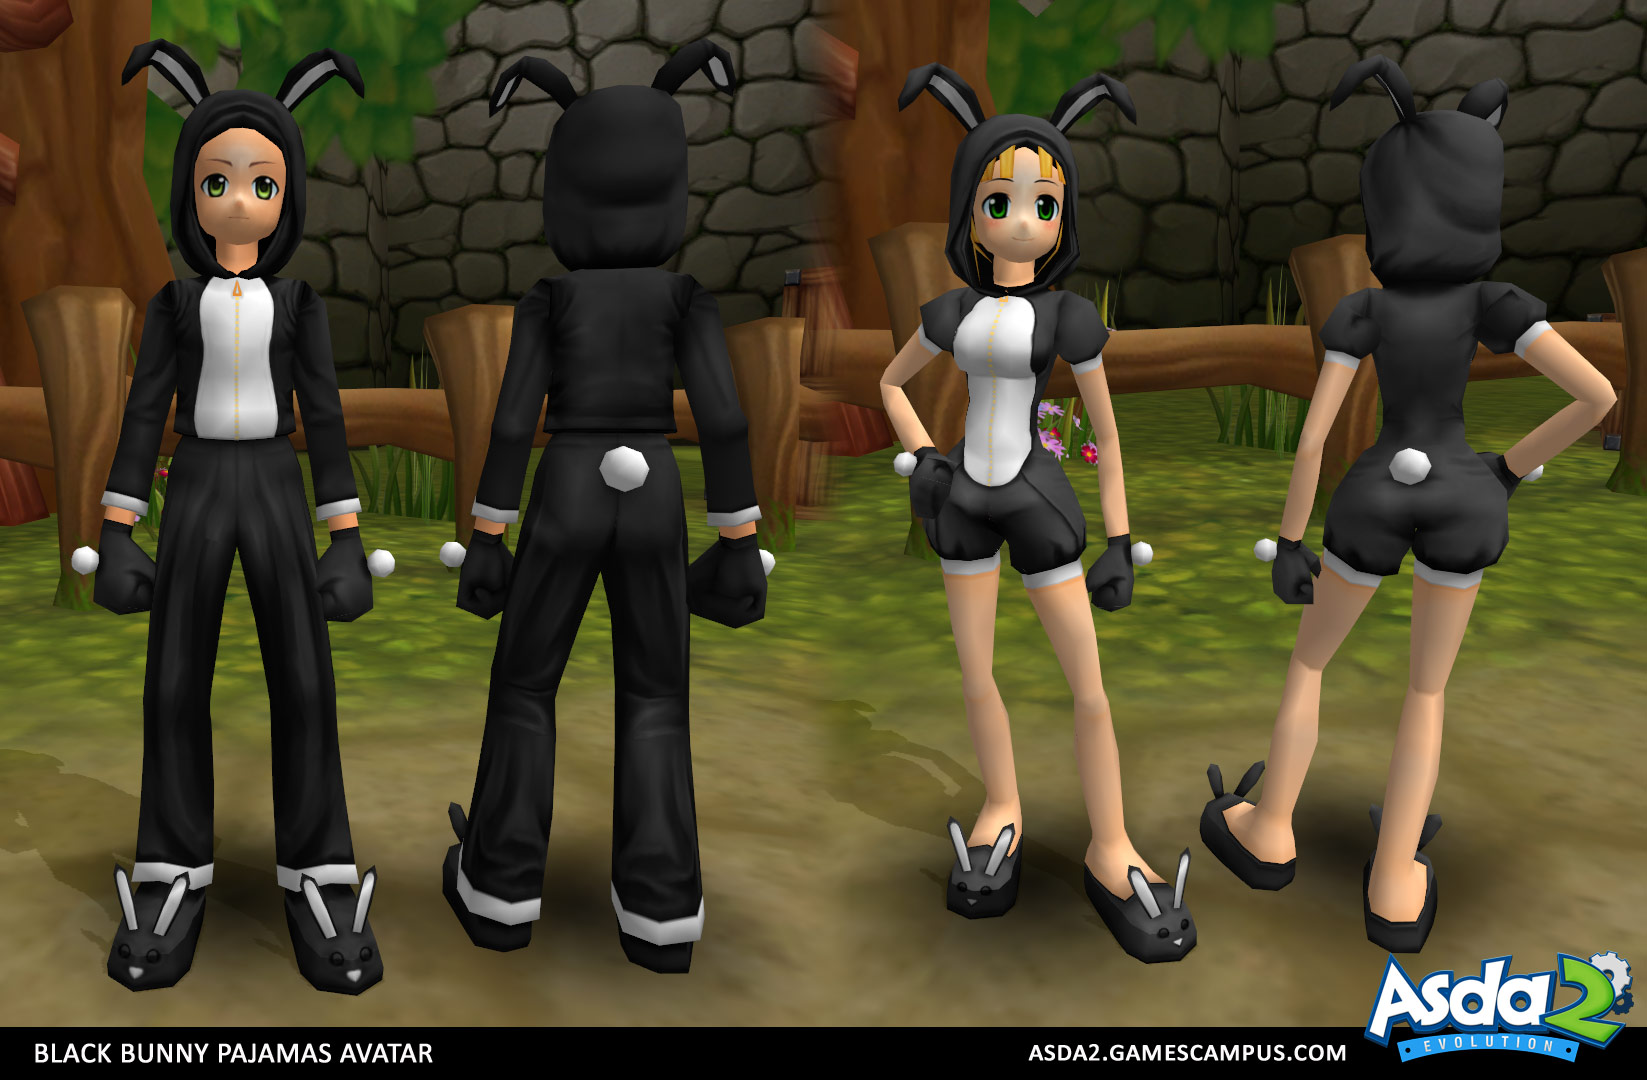 Best Anime MMORPG - Asda 2 - Black Bunny Pajamas Set